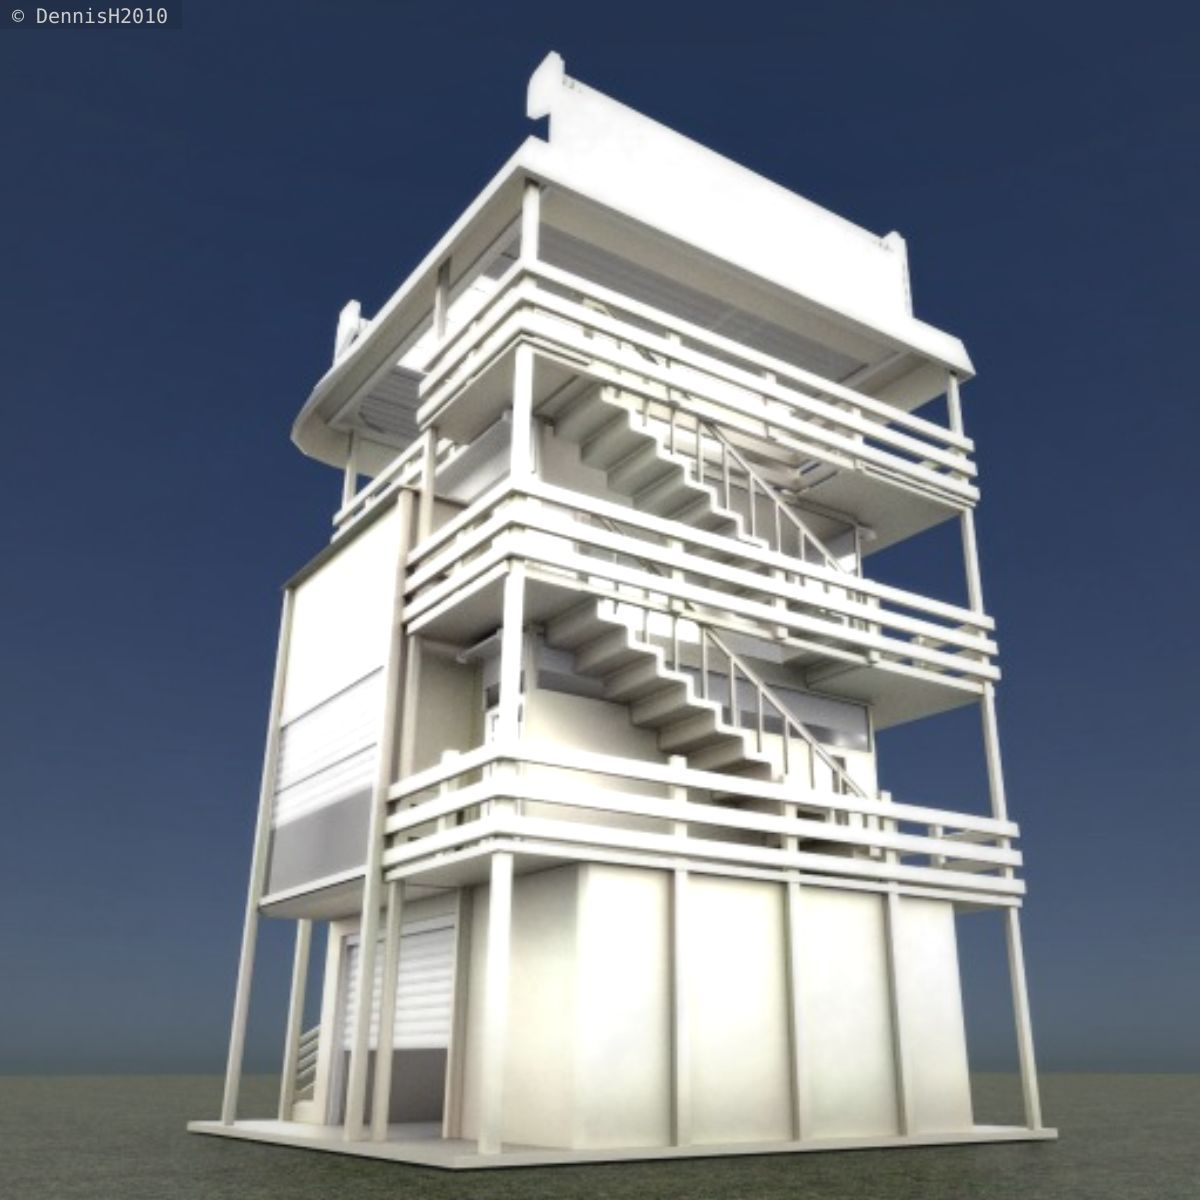 tower house design blender game engine 3d model low poly rigged animated obj - Designing A House Game